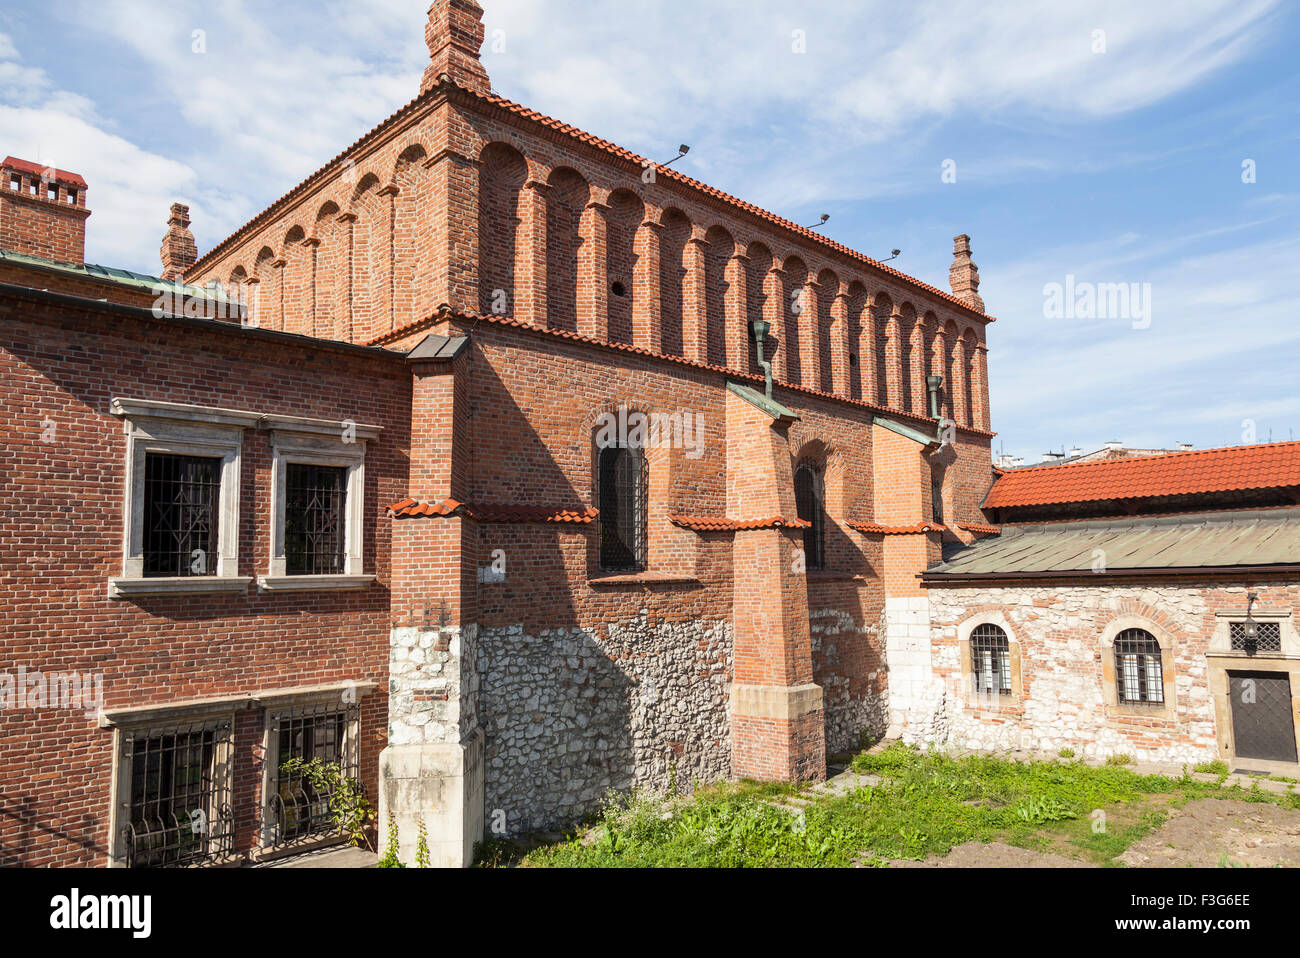 The old Synagogue, Krakow, Poland - Stock Image